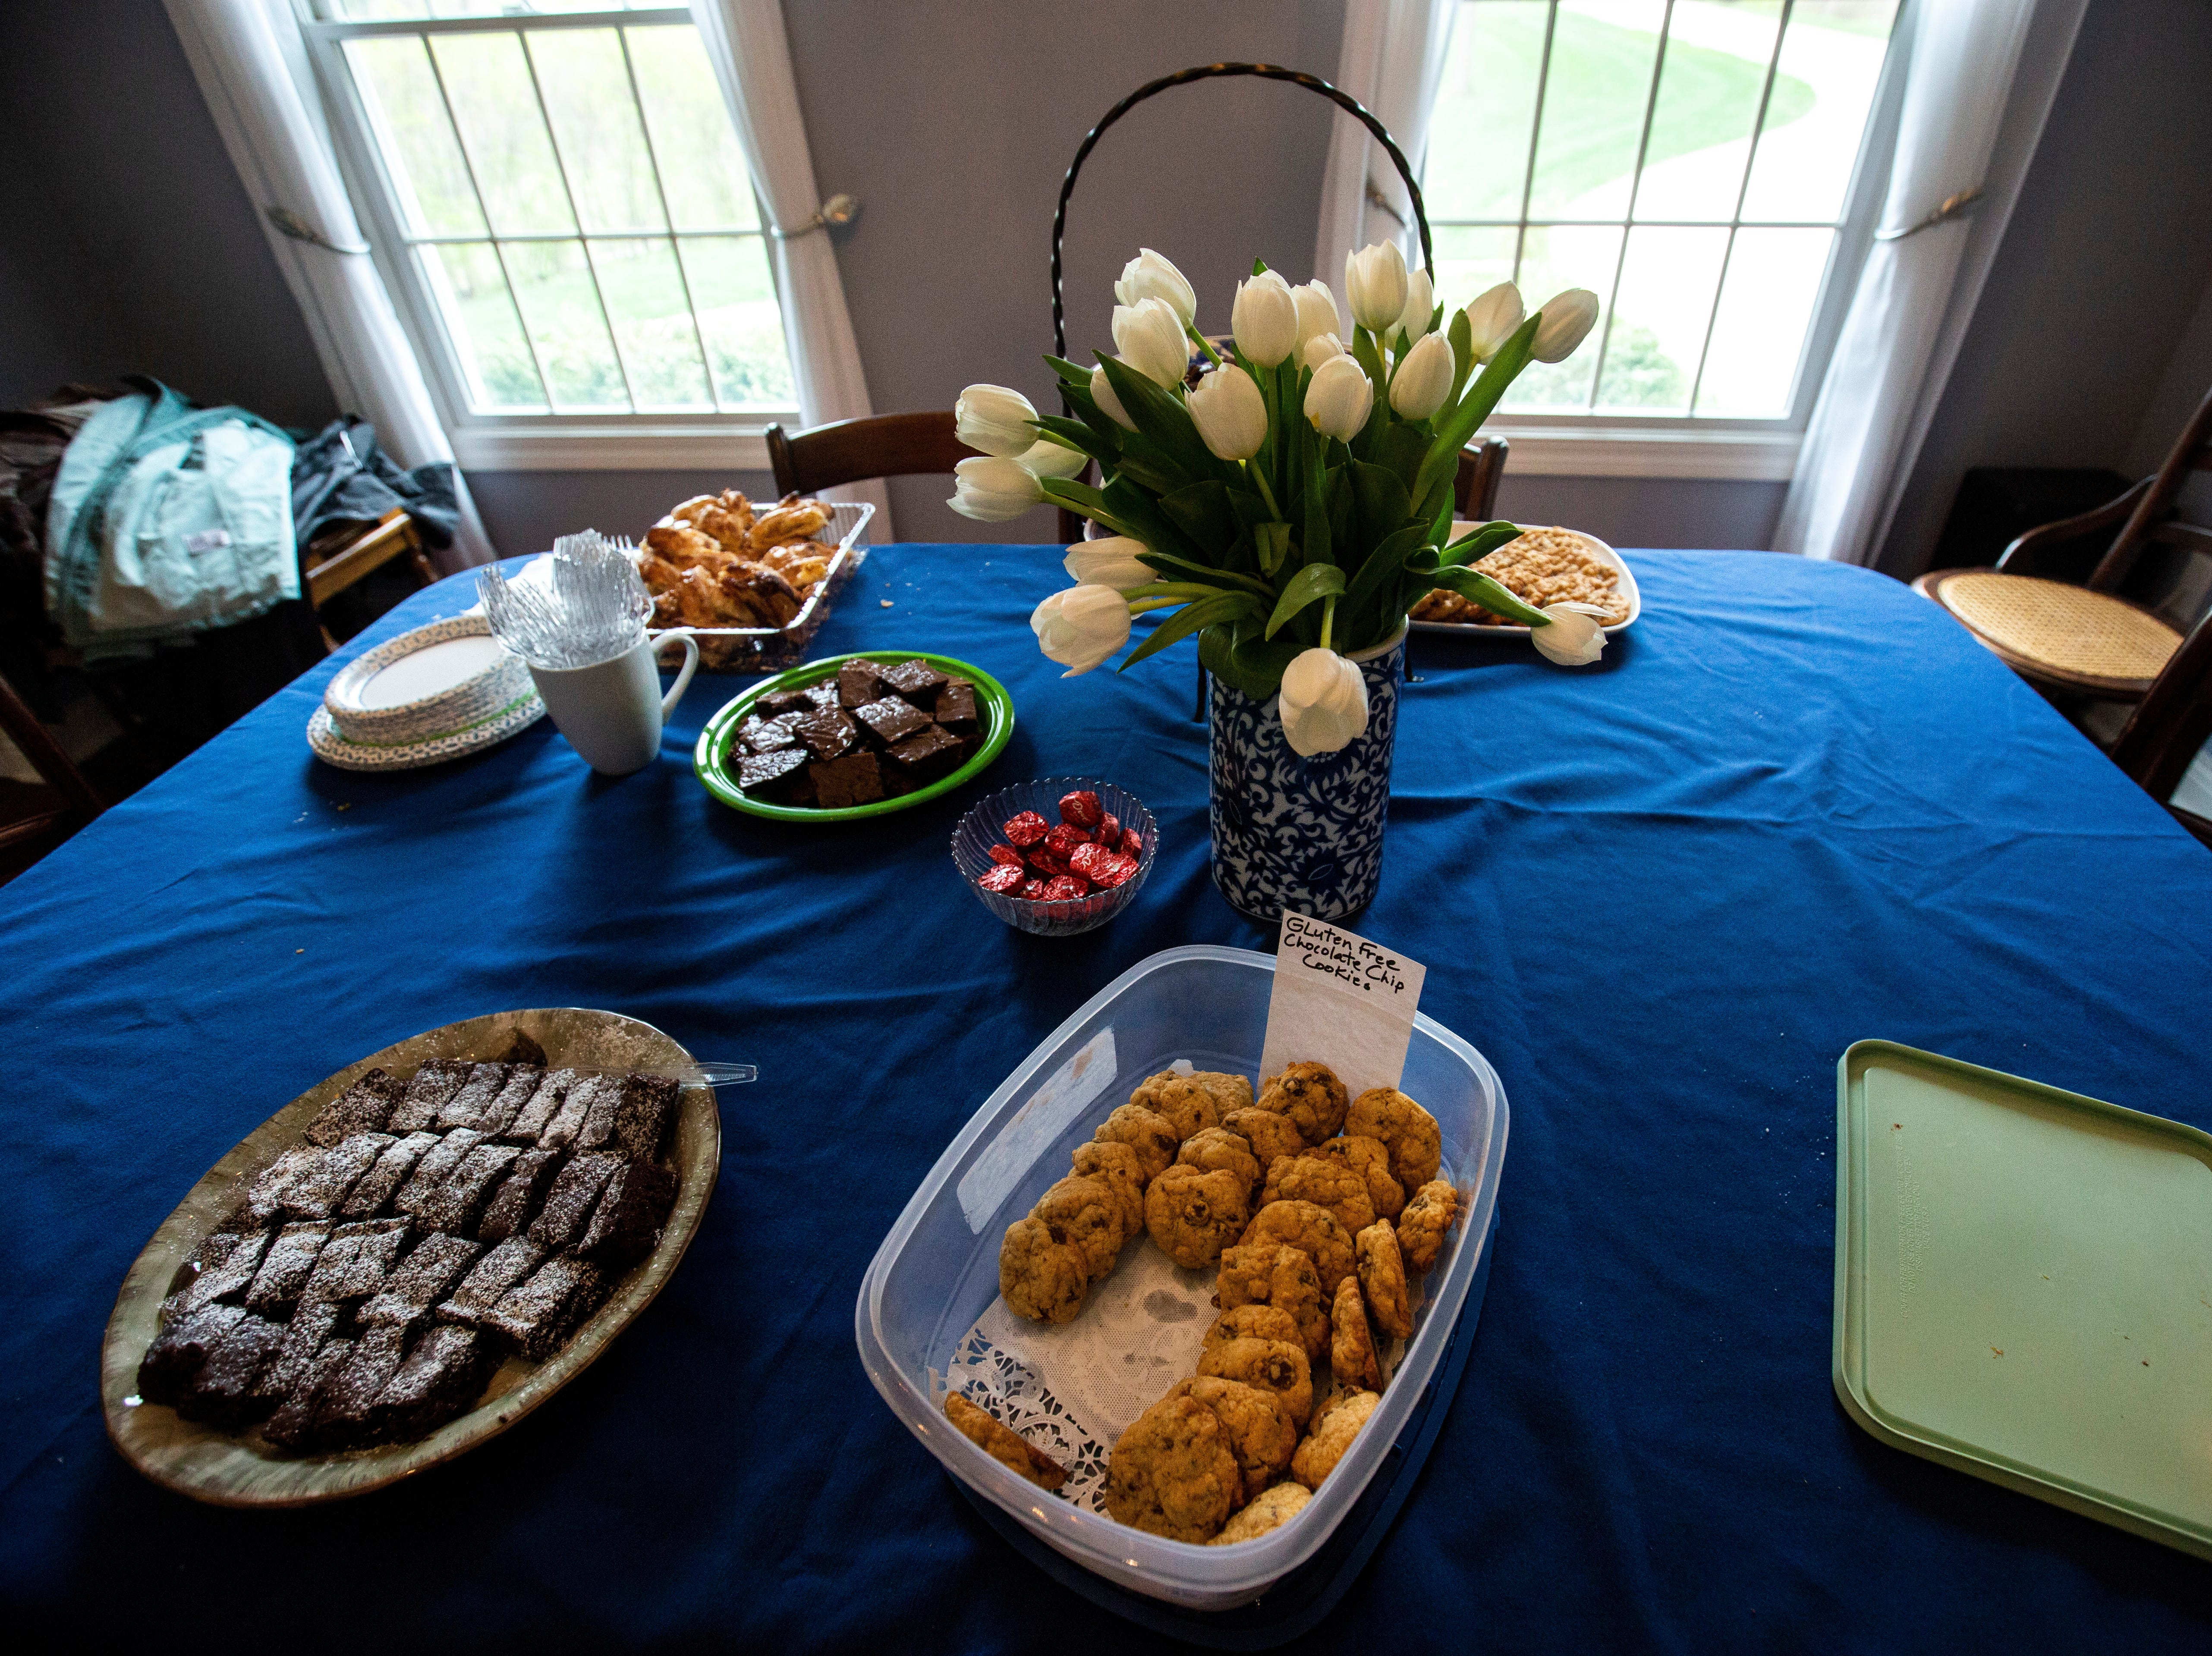 """A table of desserts is pictured while U.S. Rep. Eric Swalwell, D-Calif., speaks to a group at a house party hosted by the """"Potluck Insurgency"""" group, Sunday, April 28, 2019, at a home in North Liberty, Iowa."""